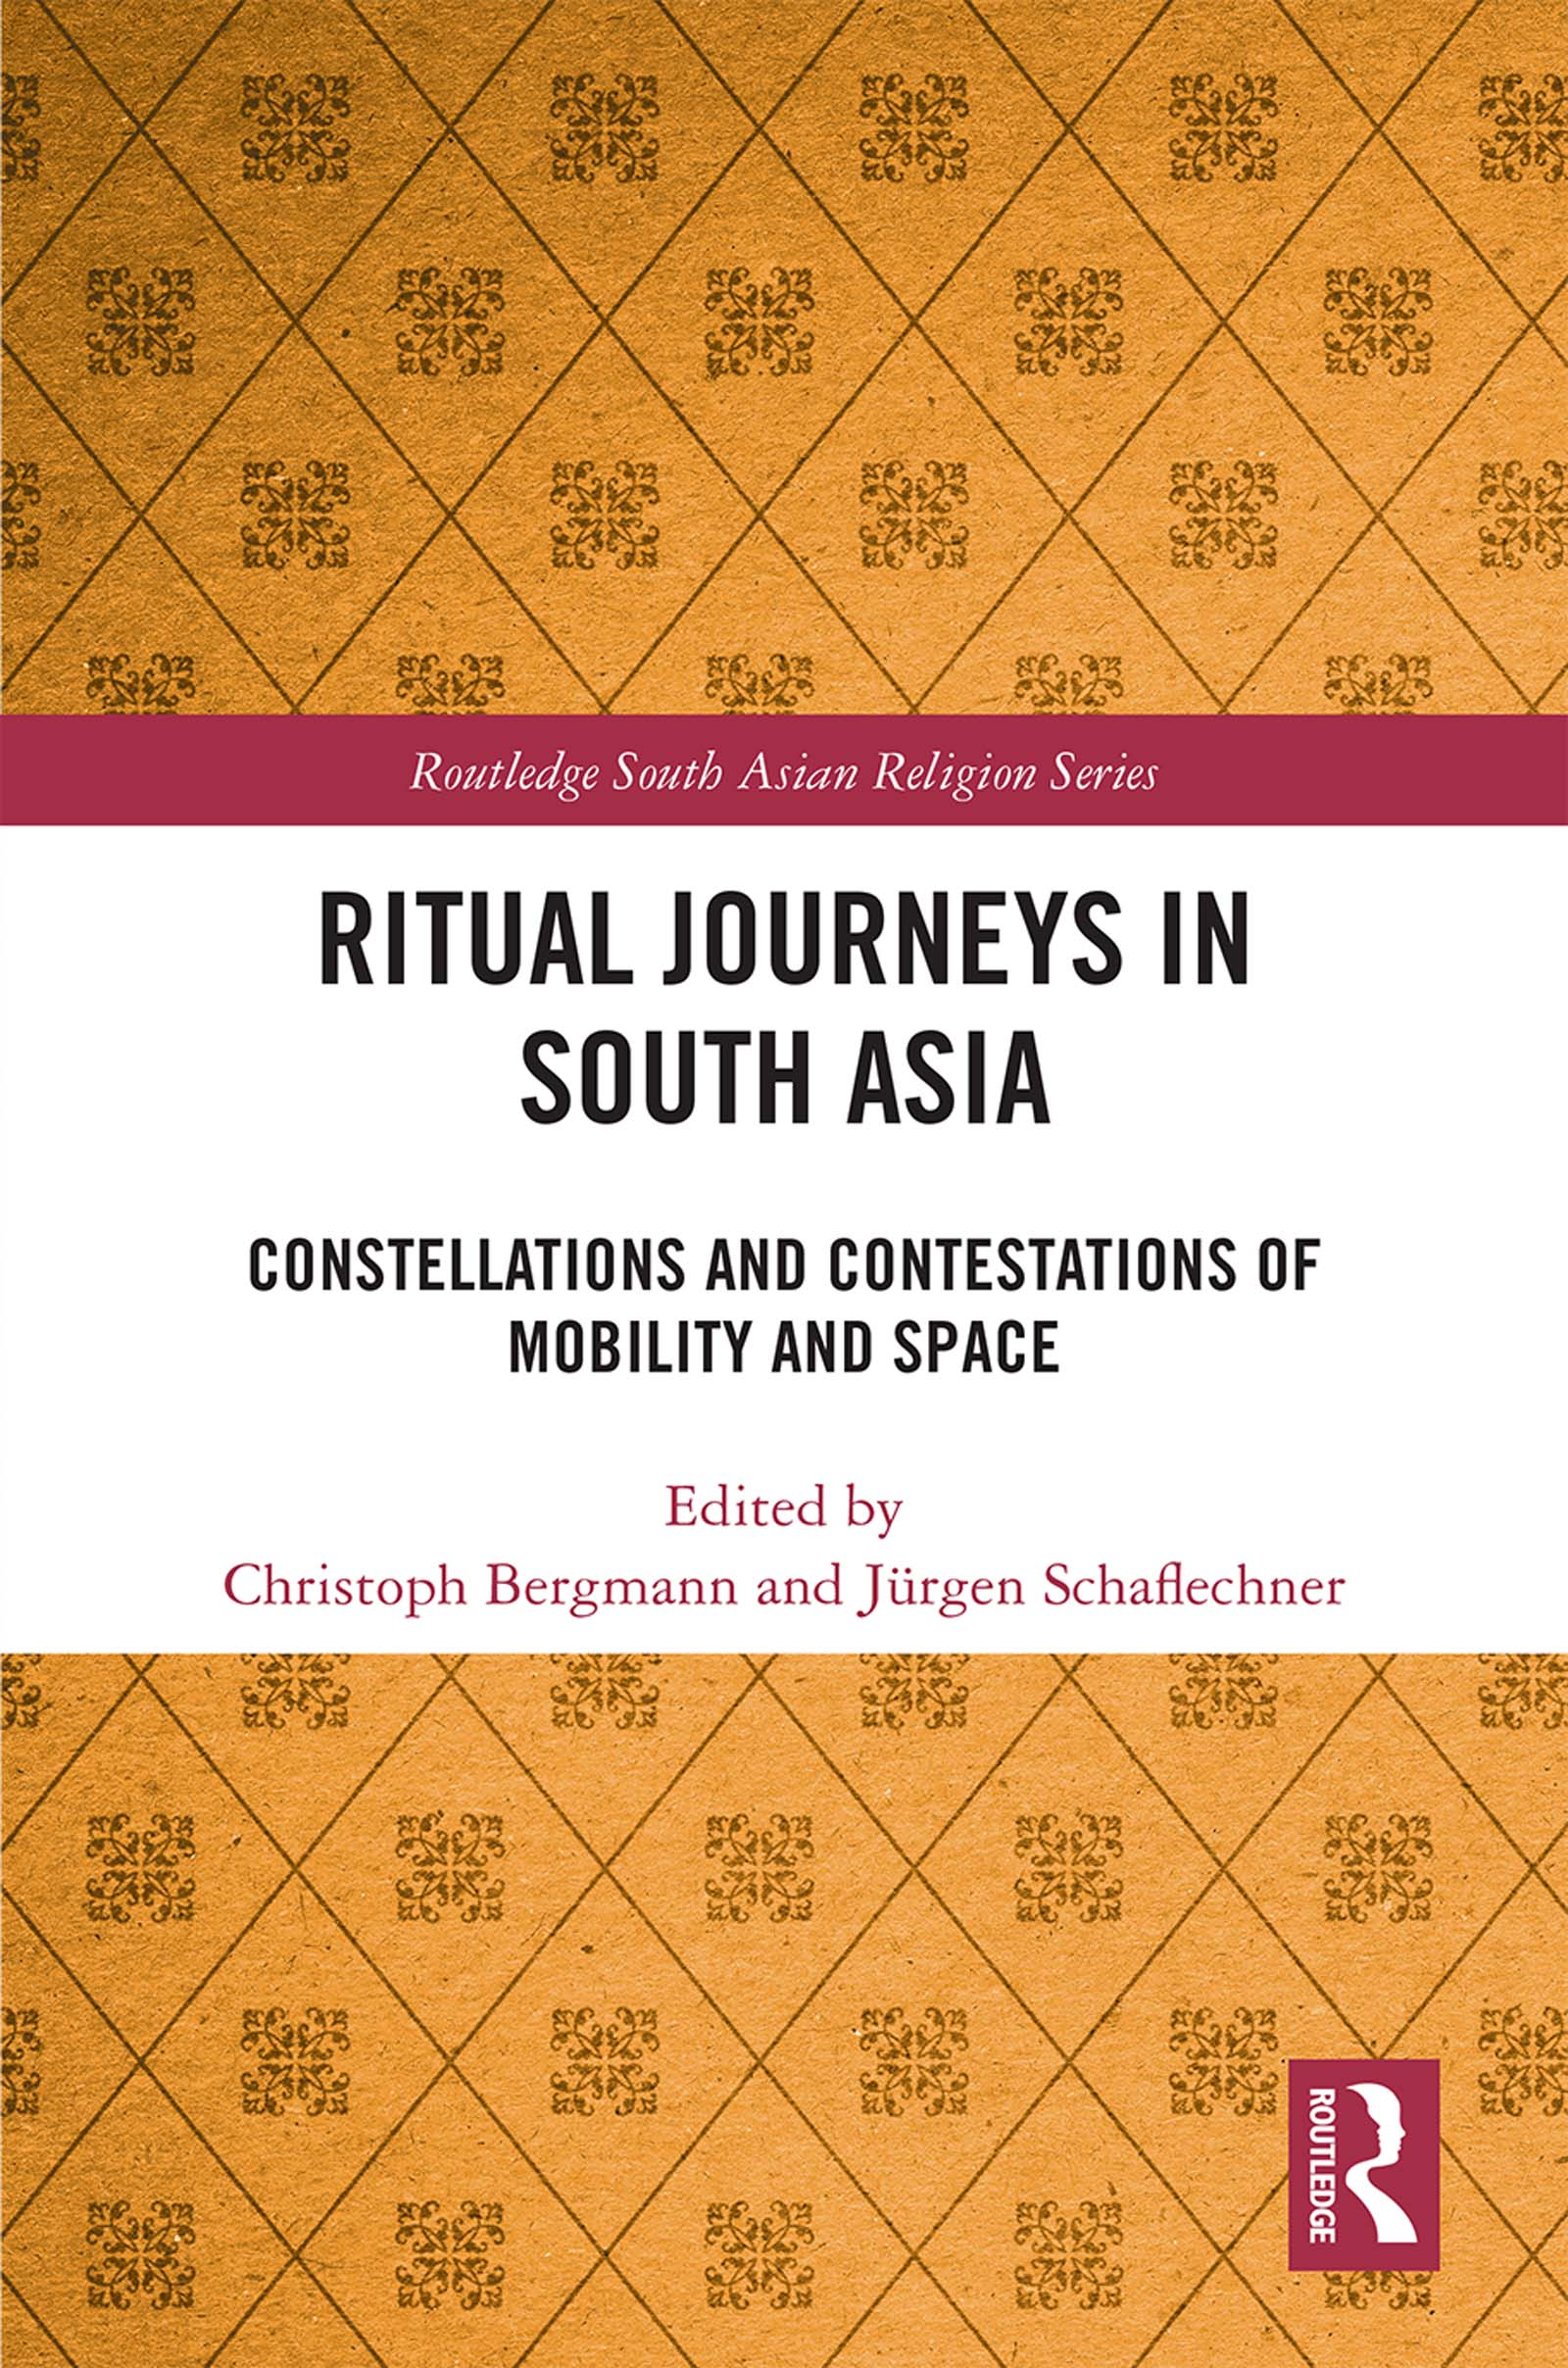 Ritual Journeys in South Asia: Constellations and Contestations of Mobility and Space book cover